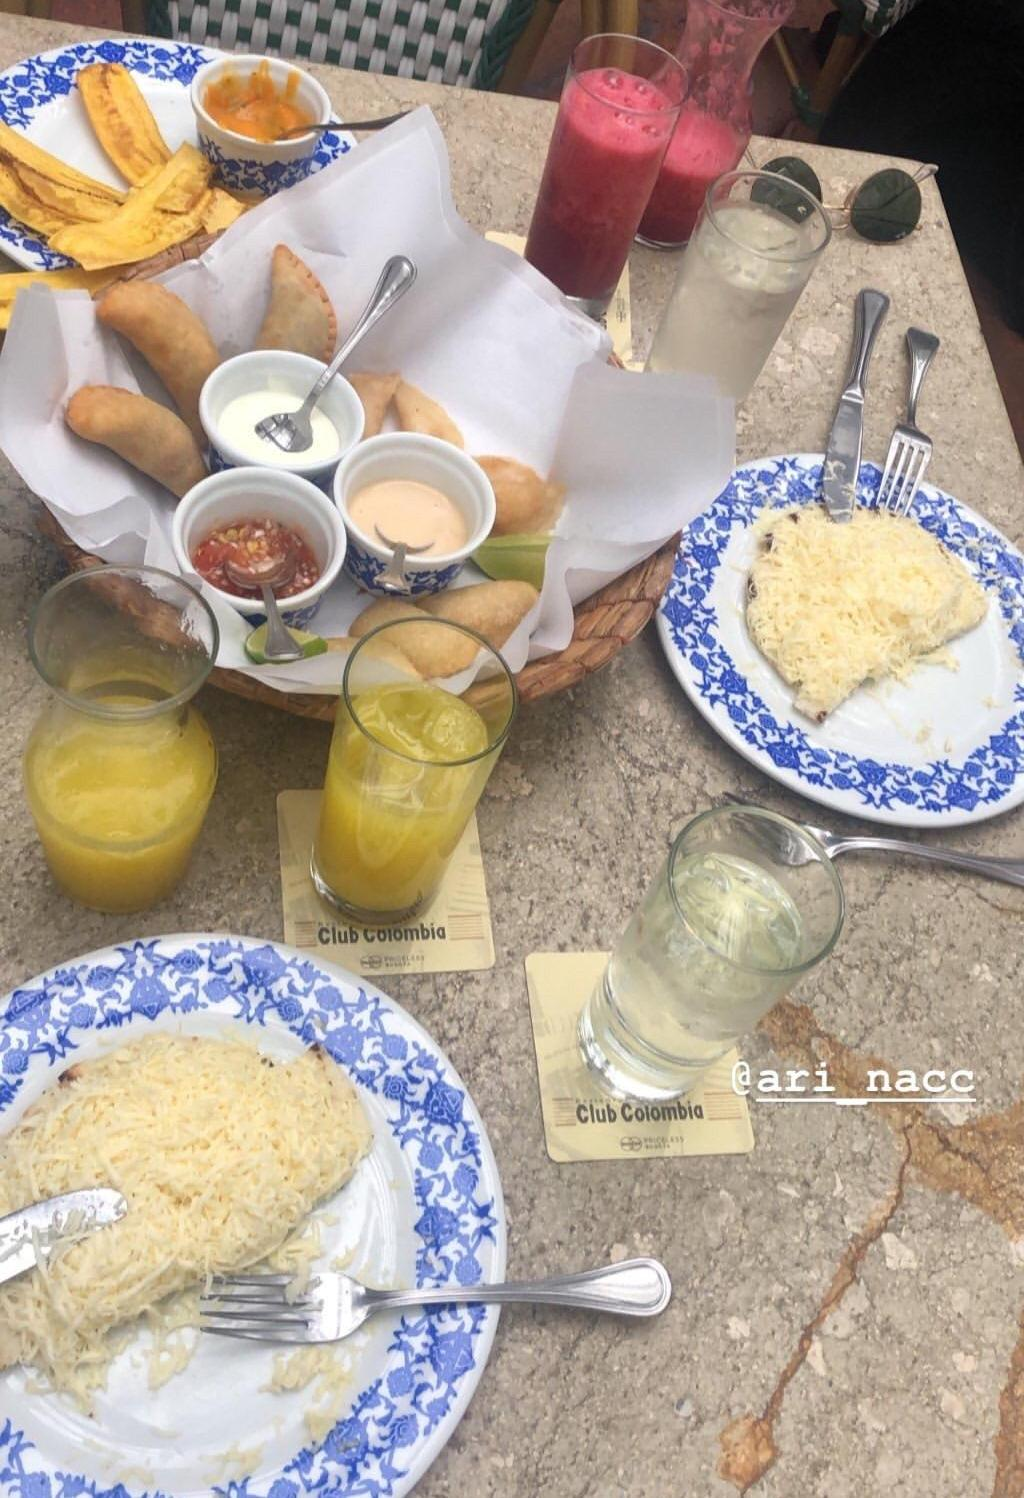 Breakfast table set up with cheese and arepas, empanadas and juices.